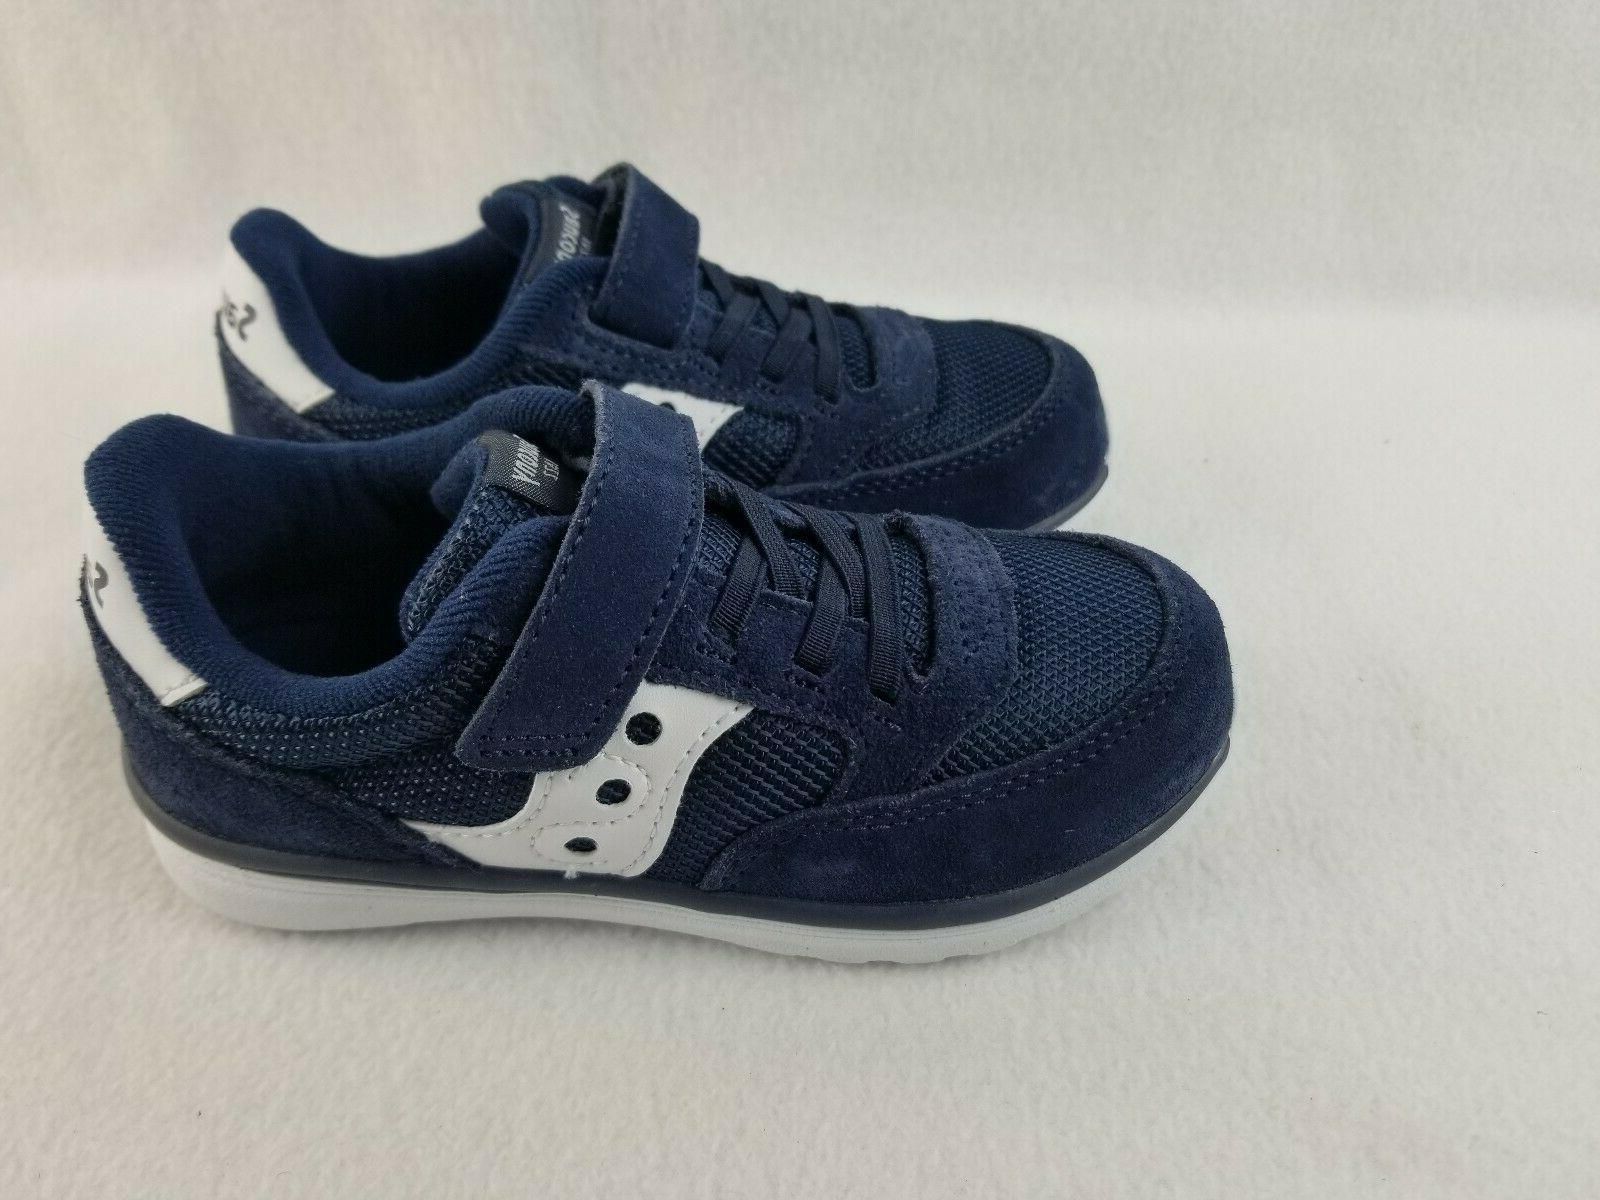 Infant Saucony Baby Jazz - Lite Sneaker, Size 4 M - Blue